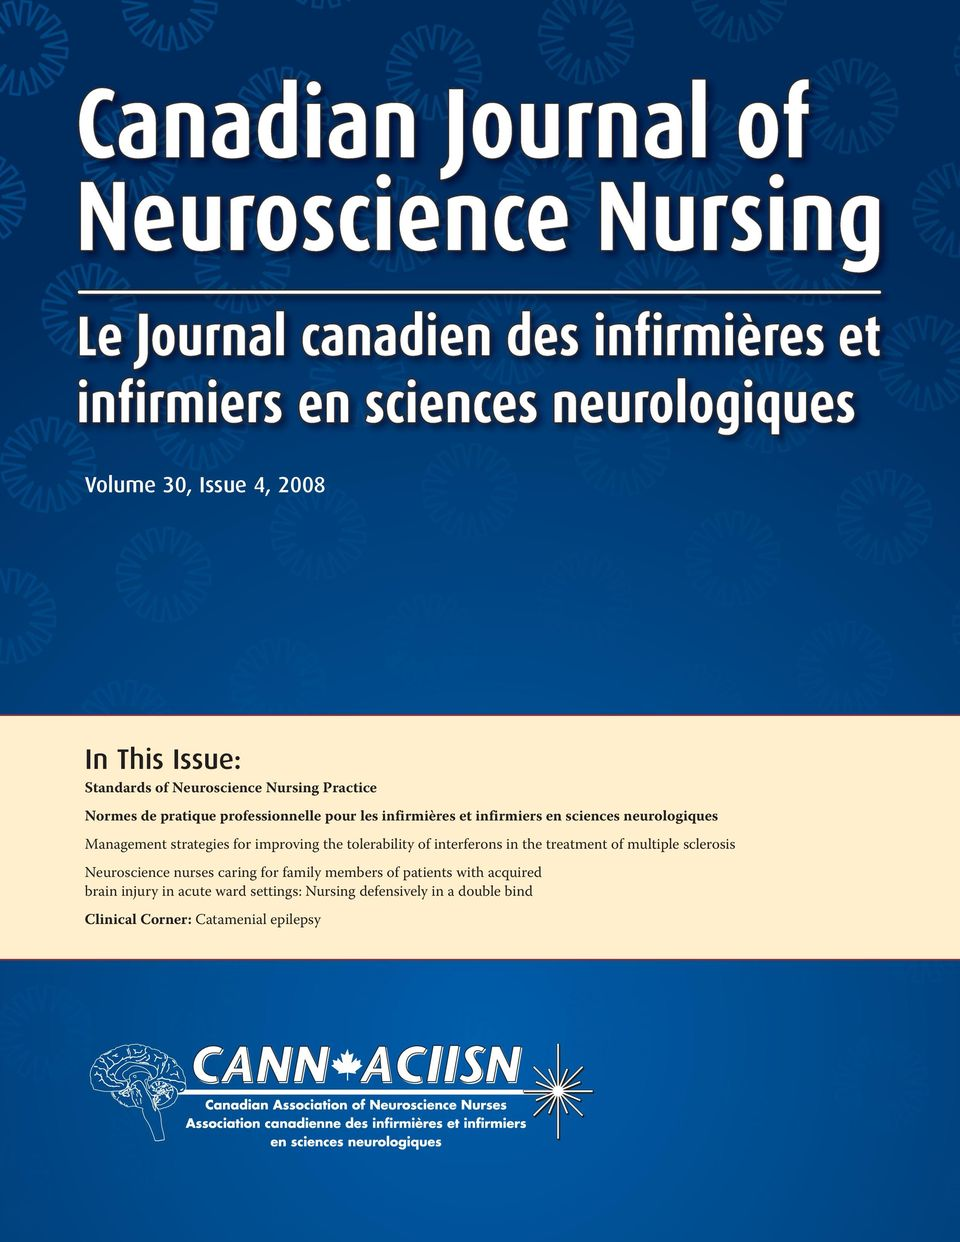 tolerability of interferons in the treatment of multiple sclerosis Neuroscience nurses caring for family members of